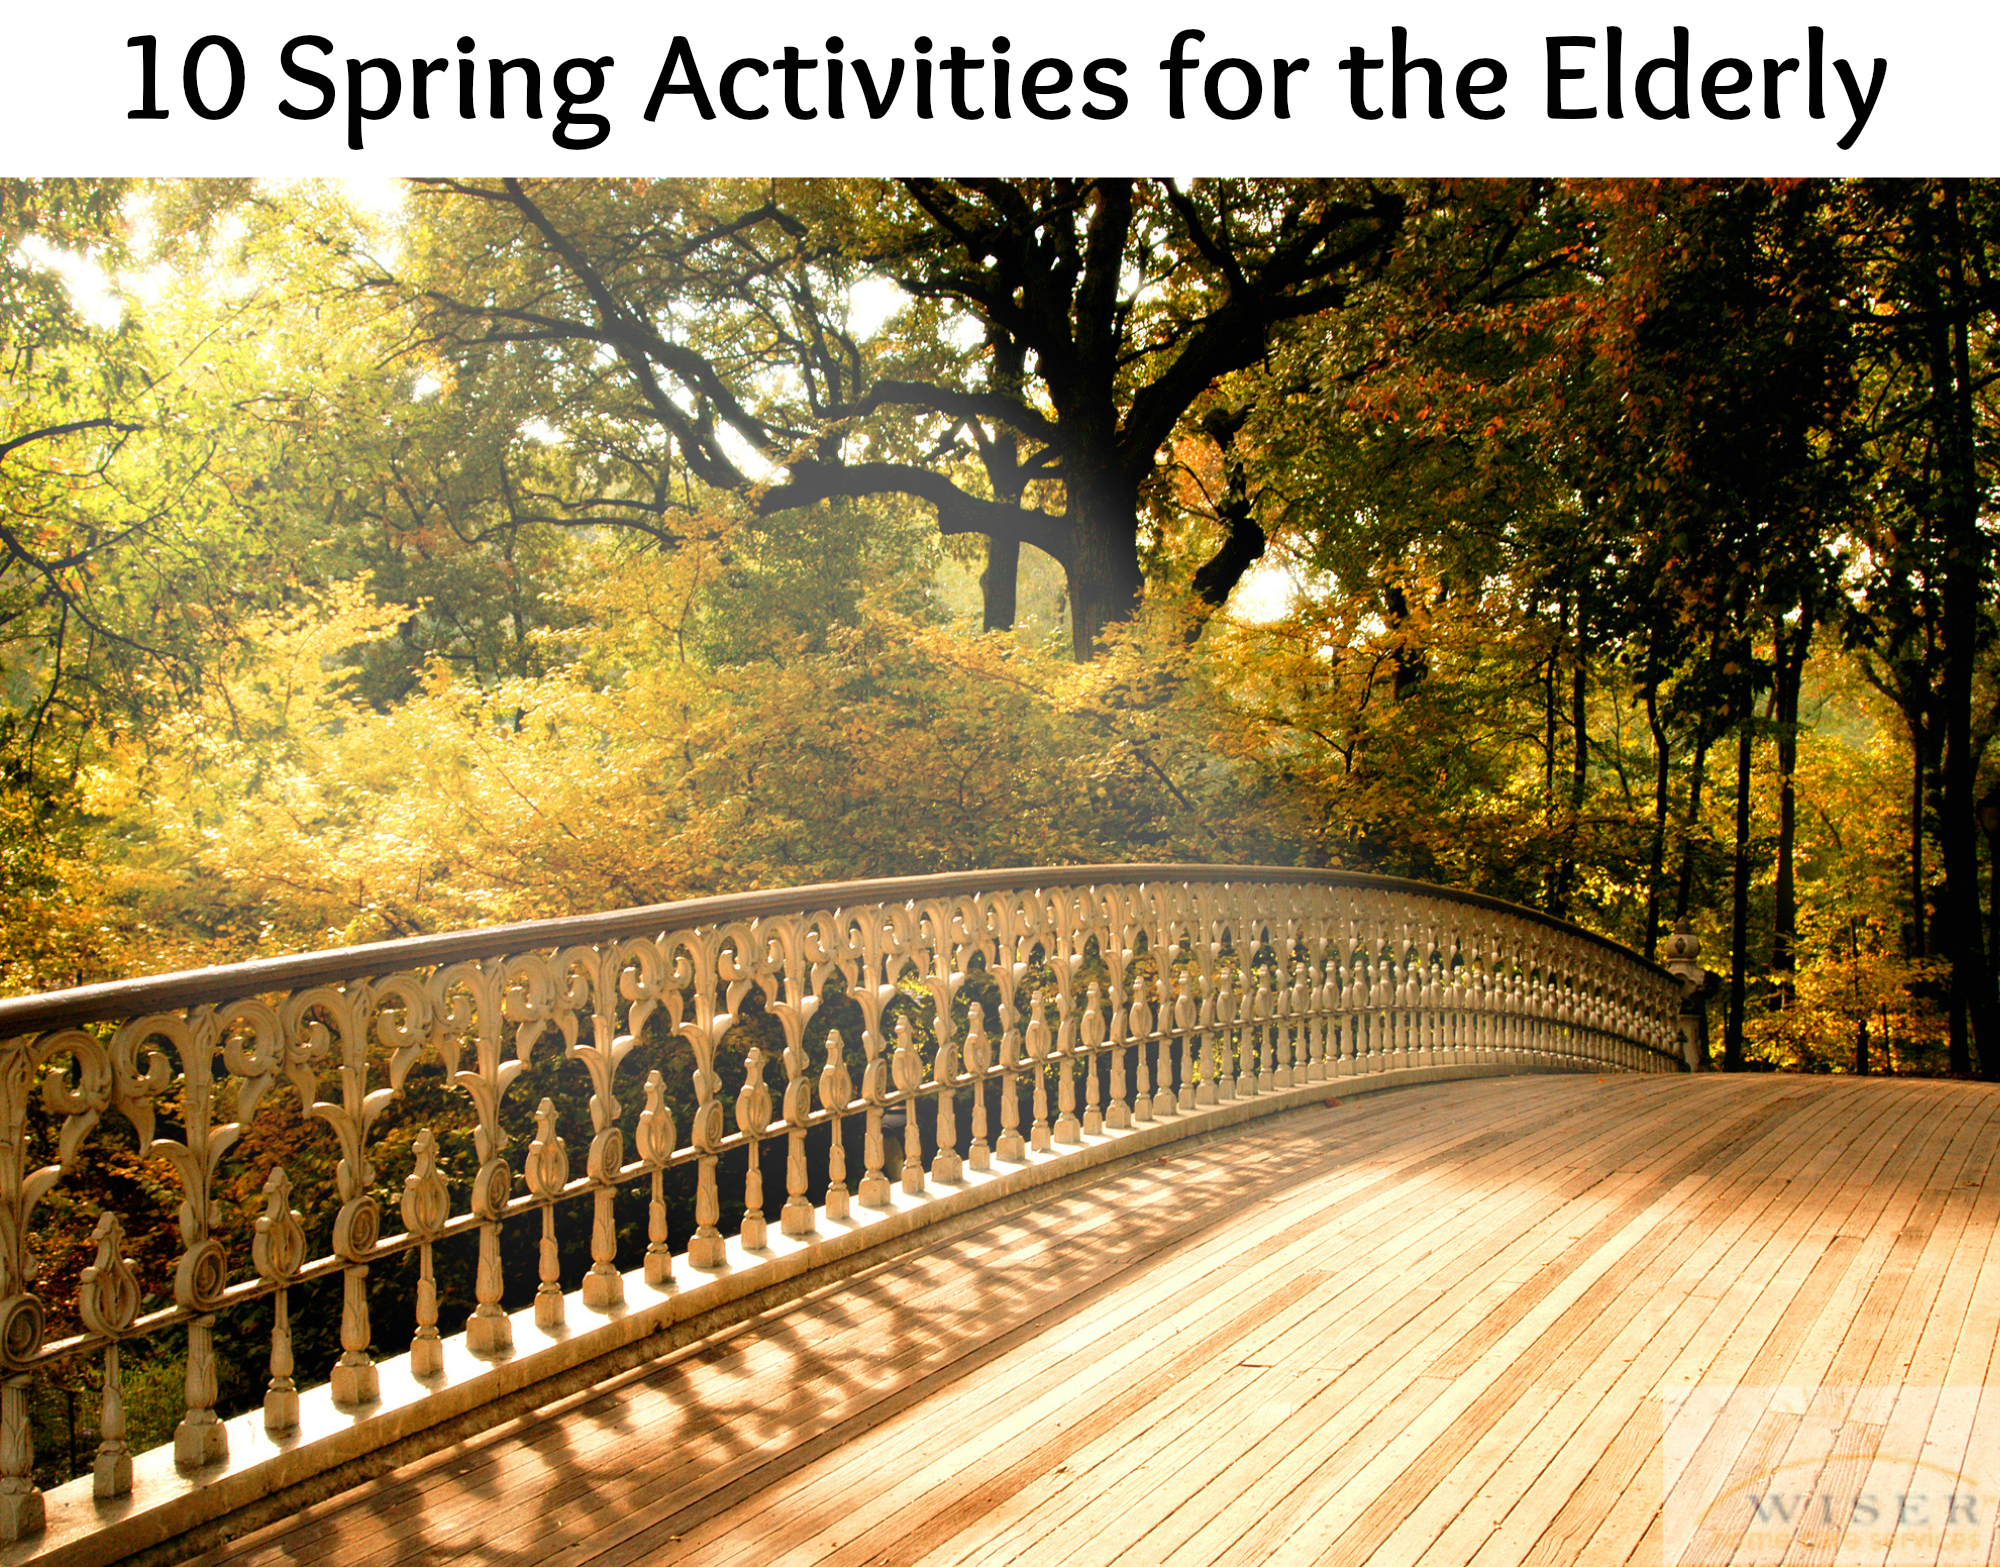 Spring is a great chance to change routines. To help renew your routine, we have compiled a list of fun things you can do with the seniors you care for.